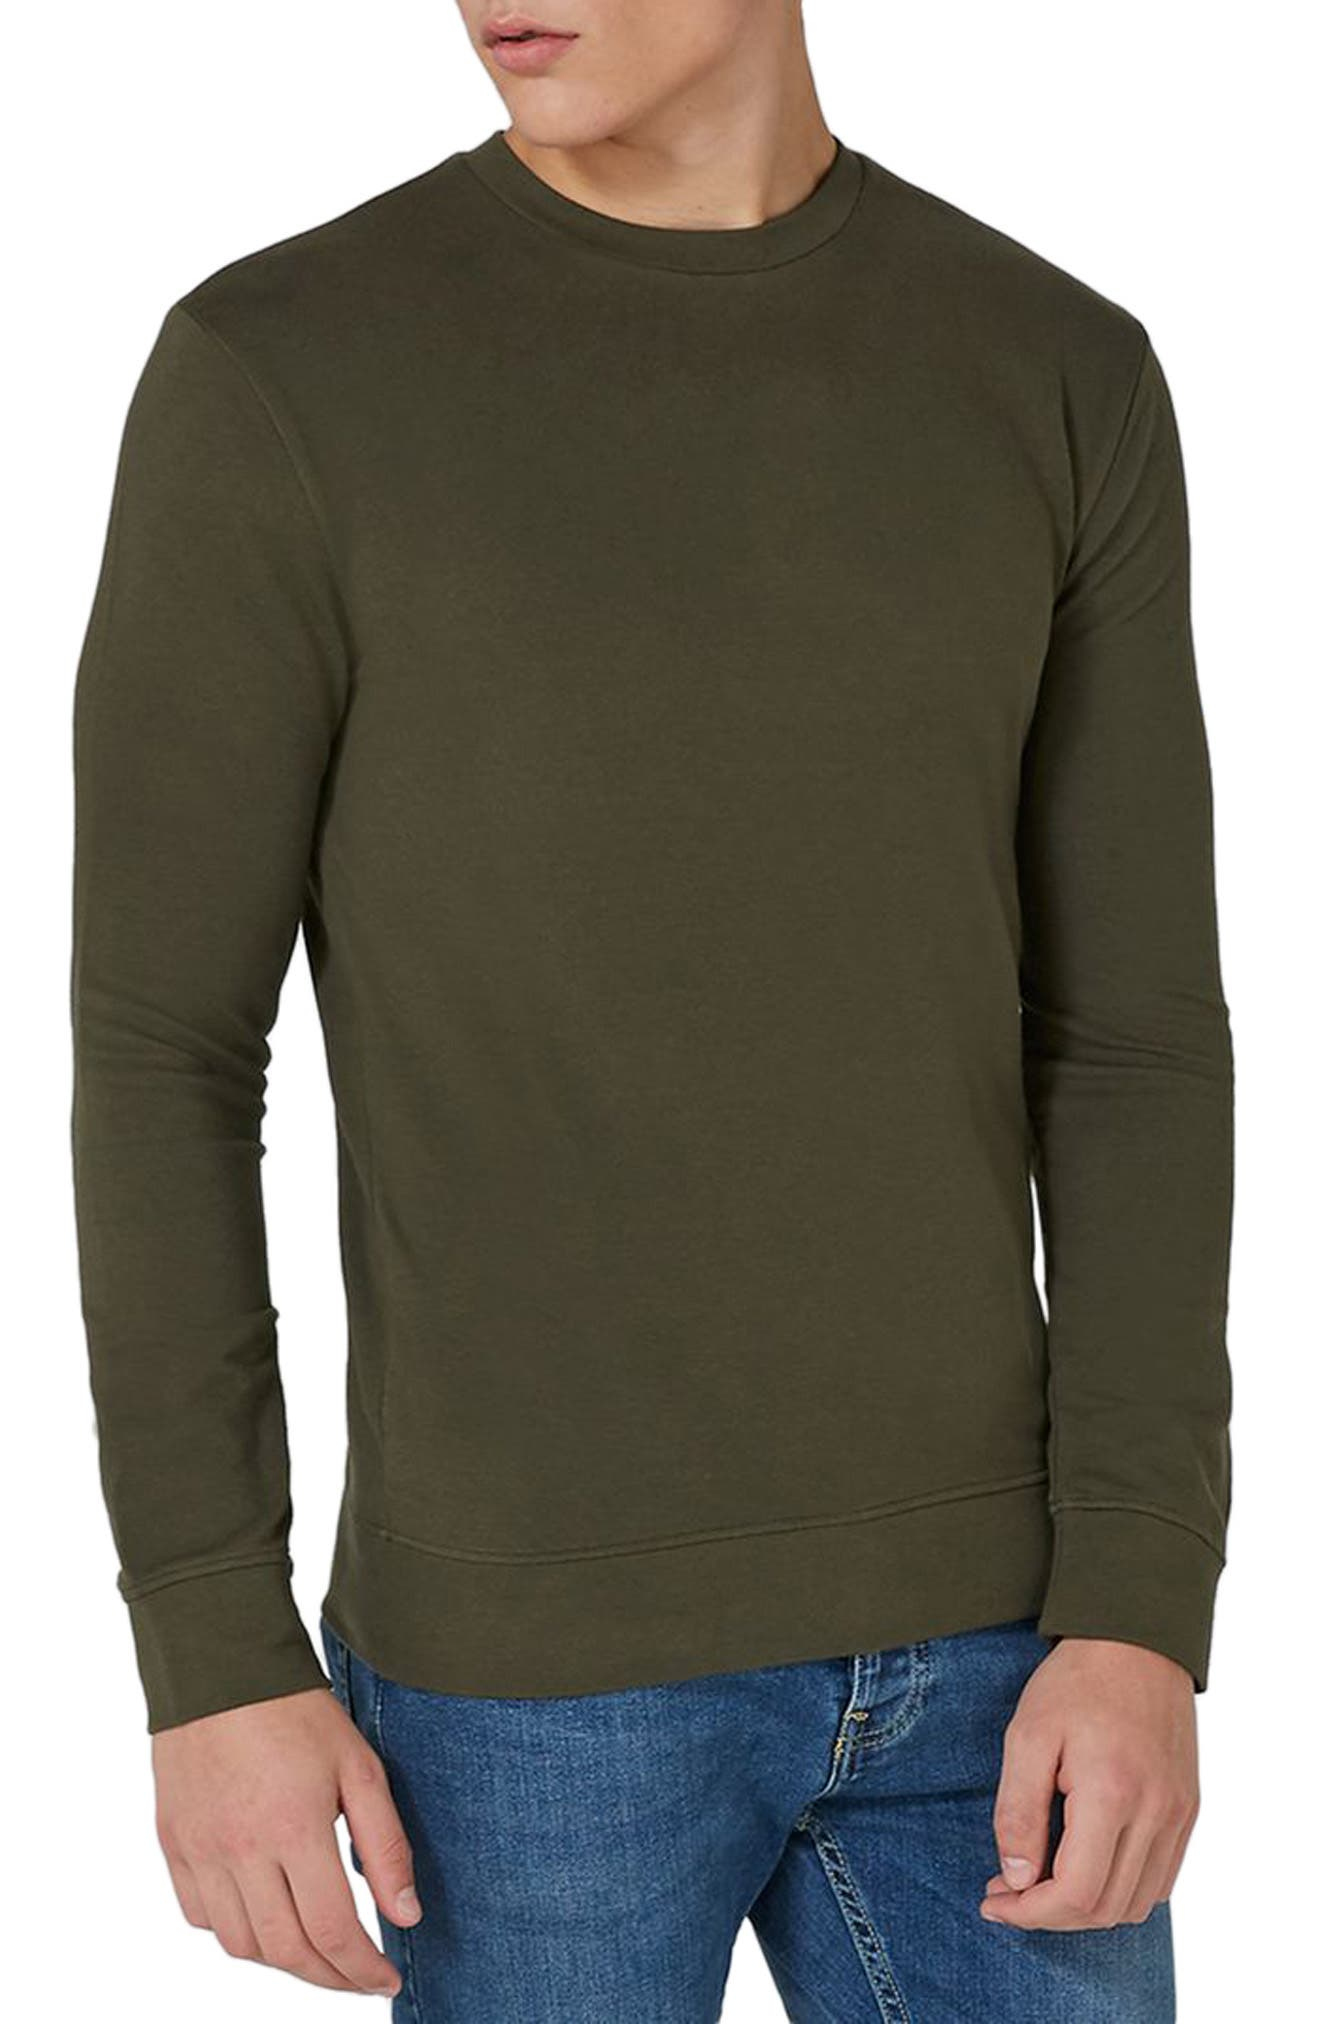 Ultra Muscle Fit Sweatshirt,                         Main,                         color, Olive